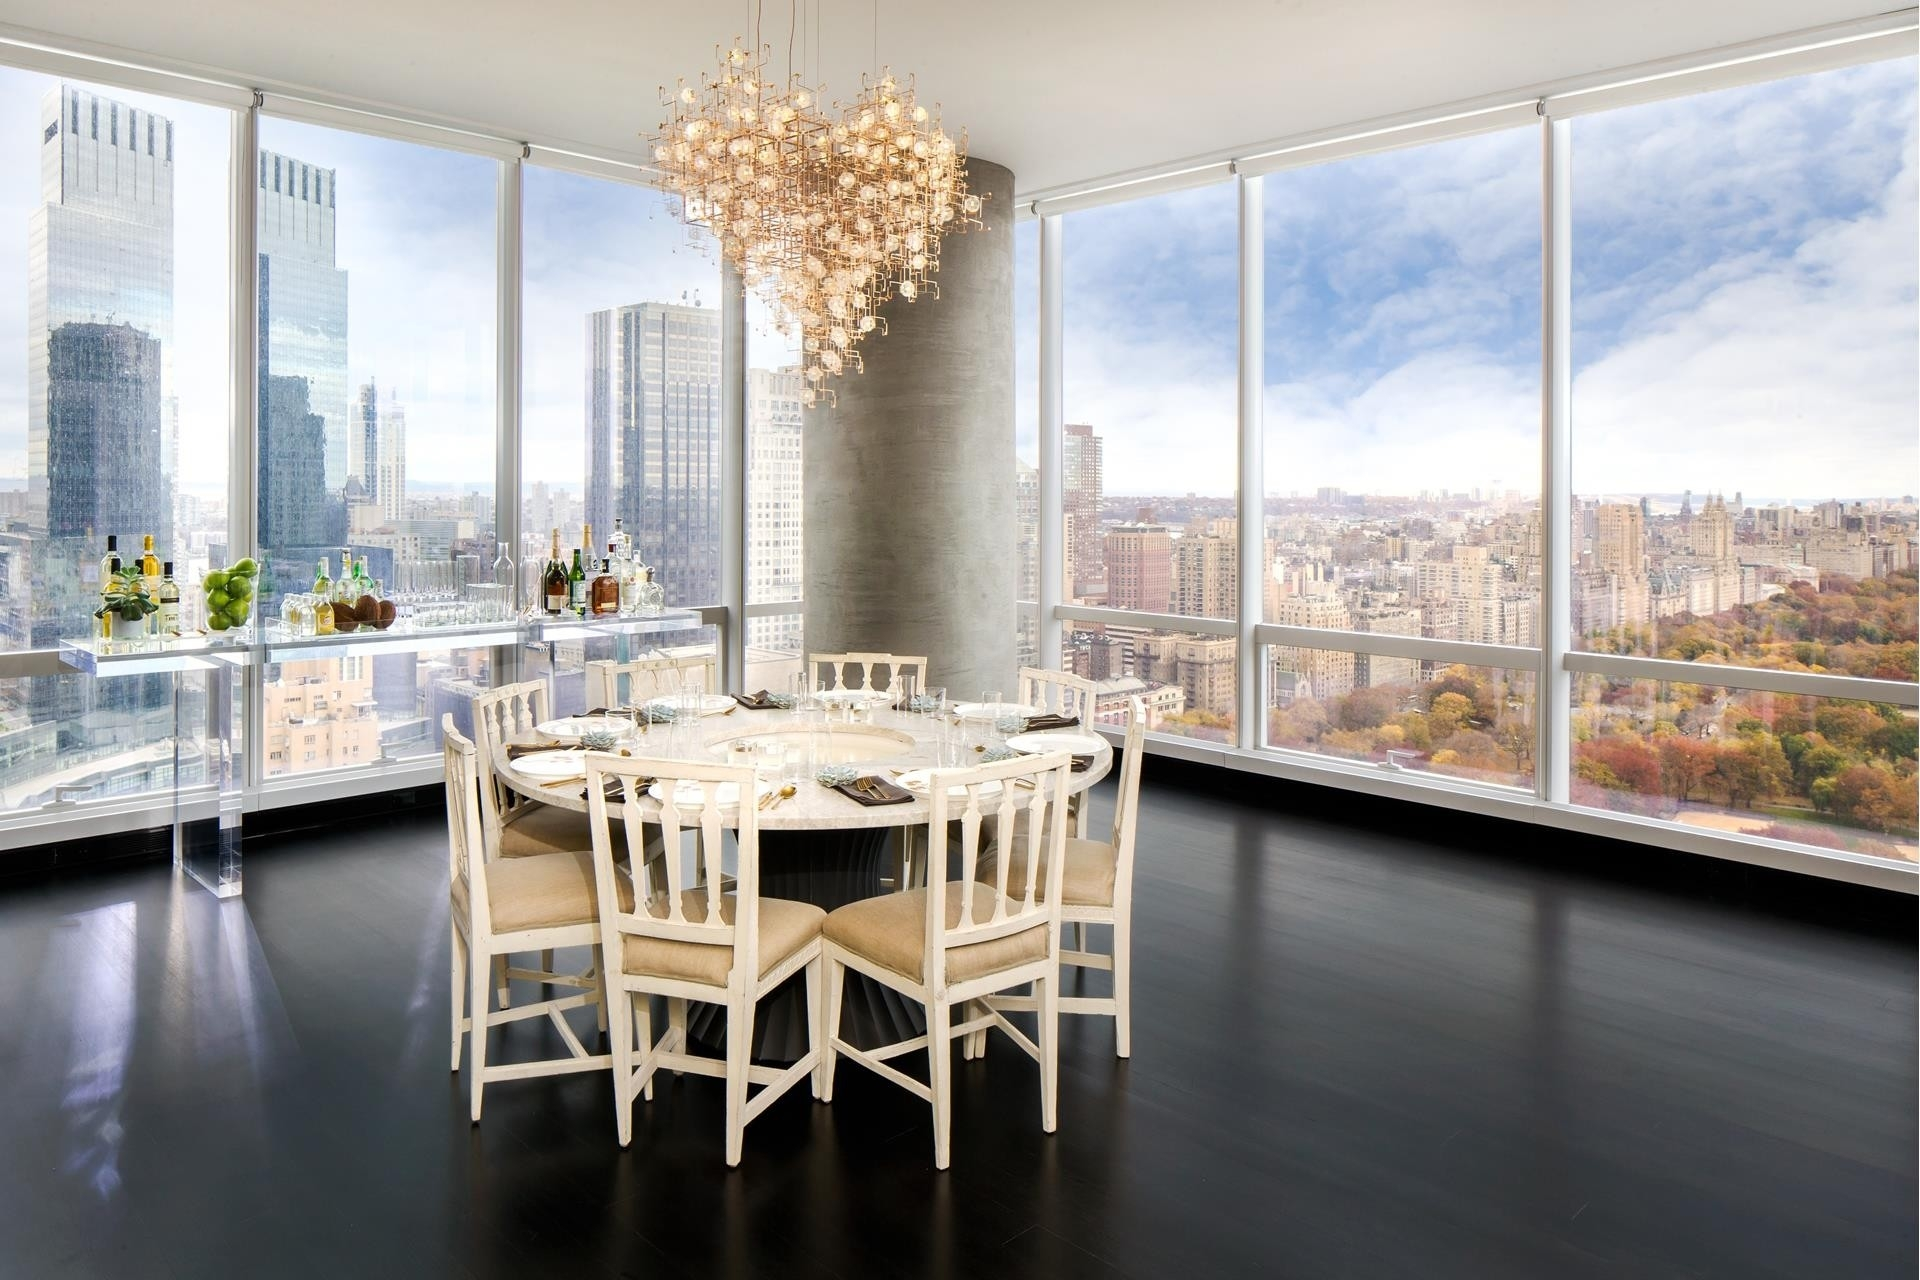 2. Condominiums for Sale at One57, 157 West 57th St, 41A Midtown West, New York, NY 10019